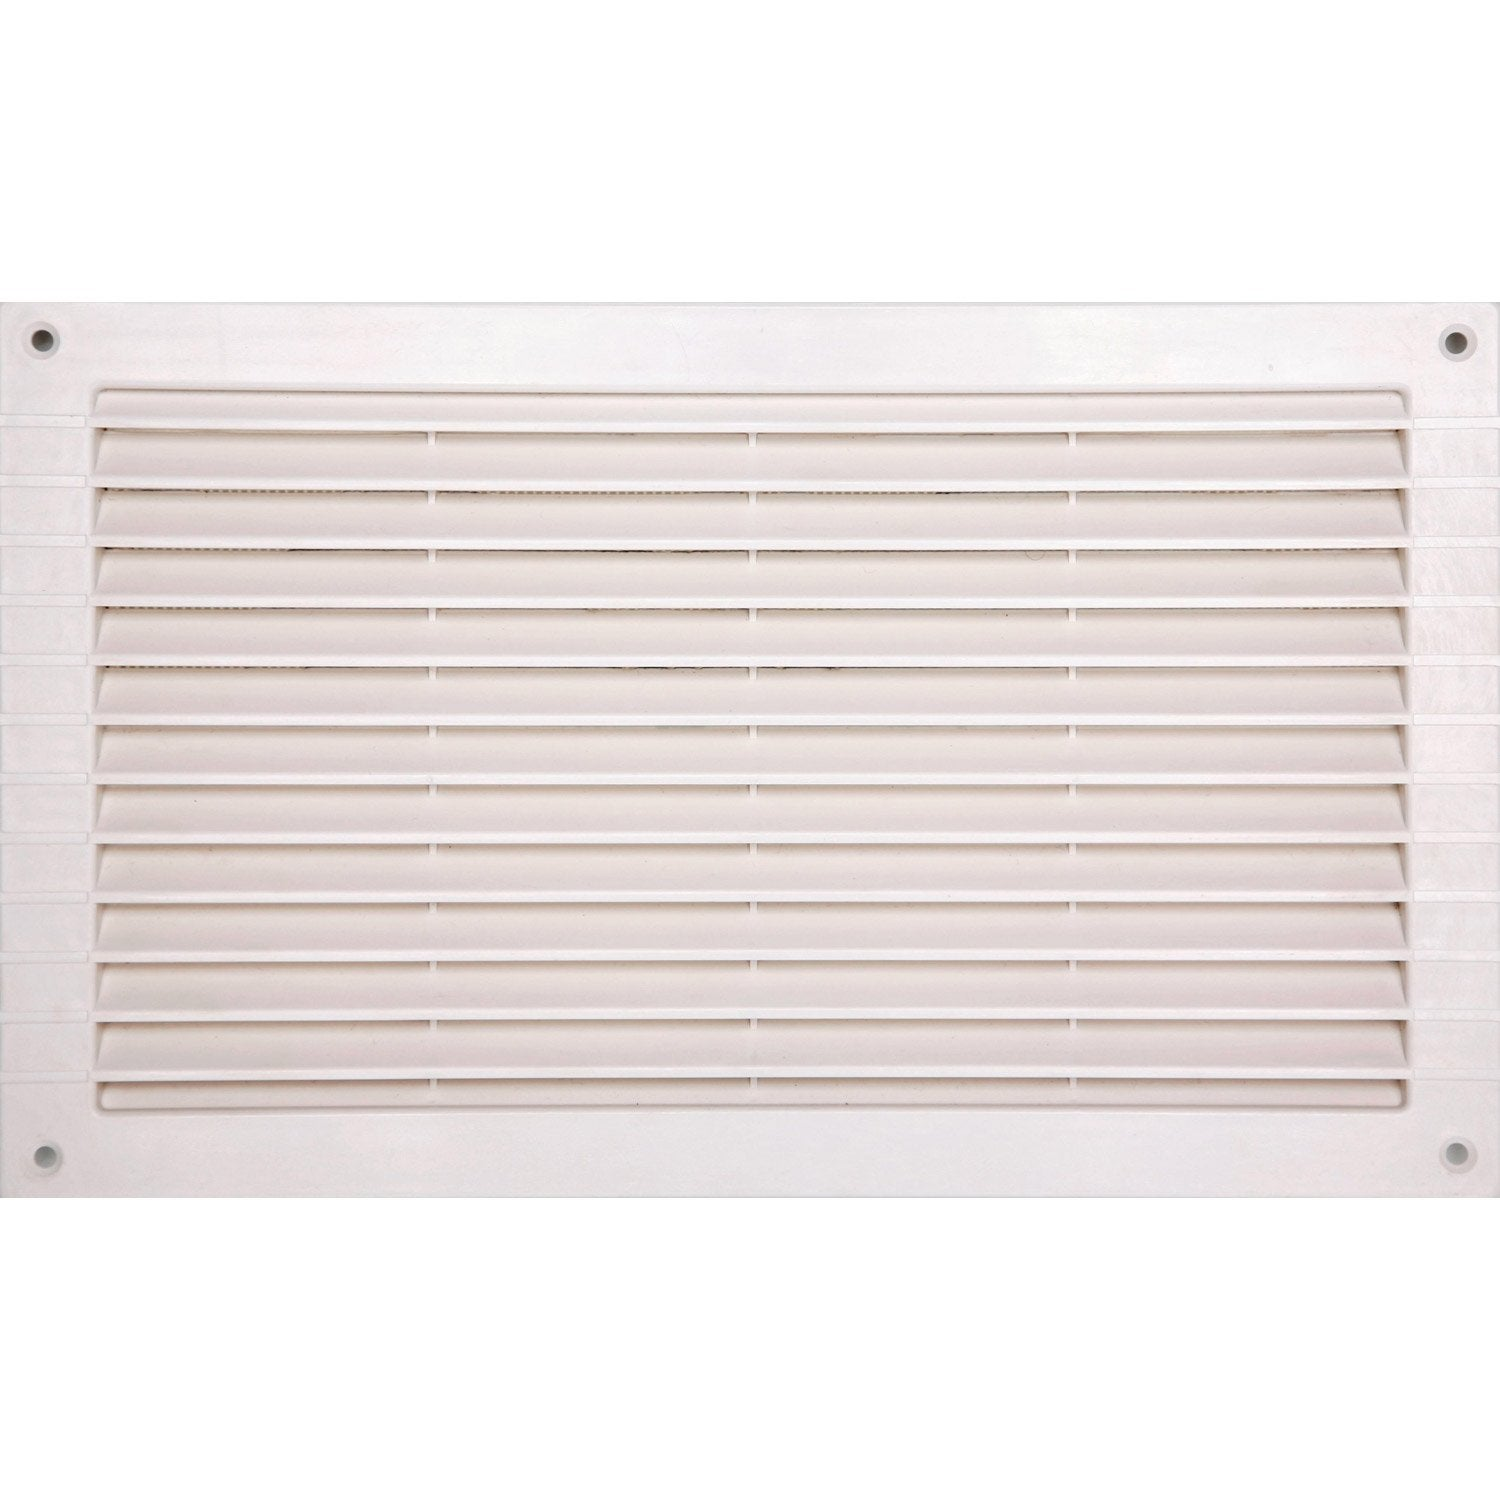 Grille d aeration rectangulaire fontaine